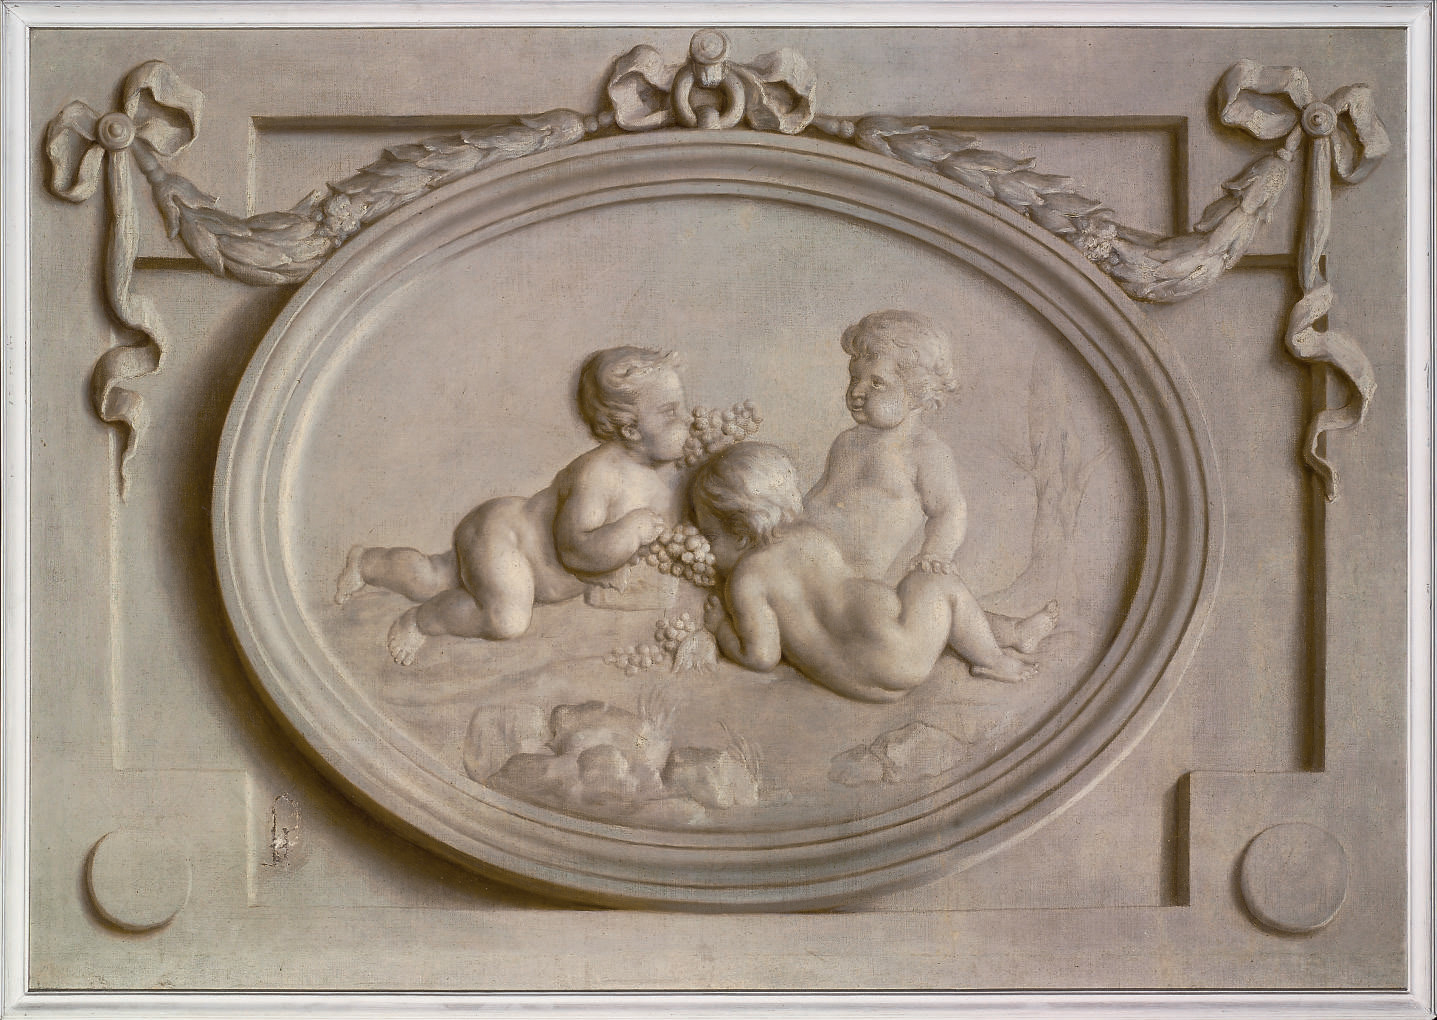 A decorative oval relief with putti, hung with ribbons and garlands